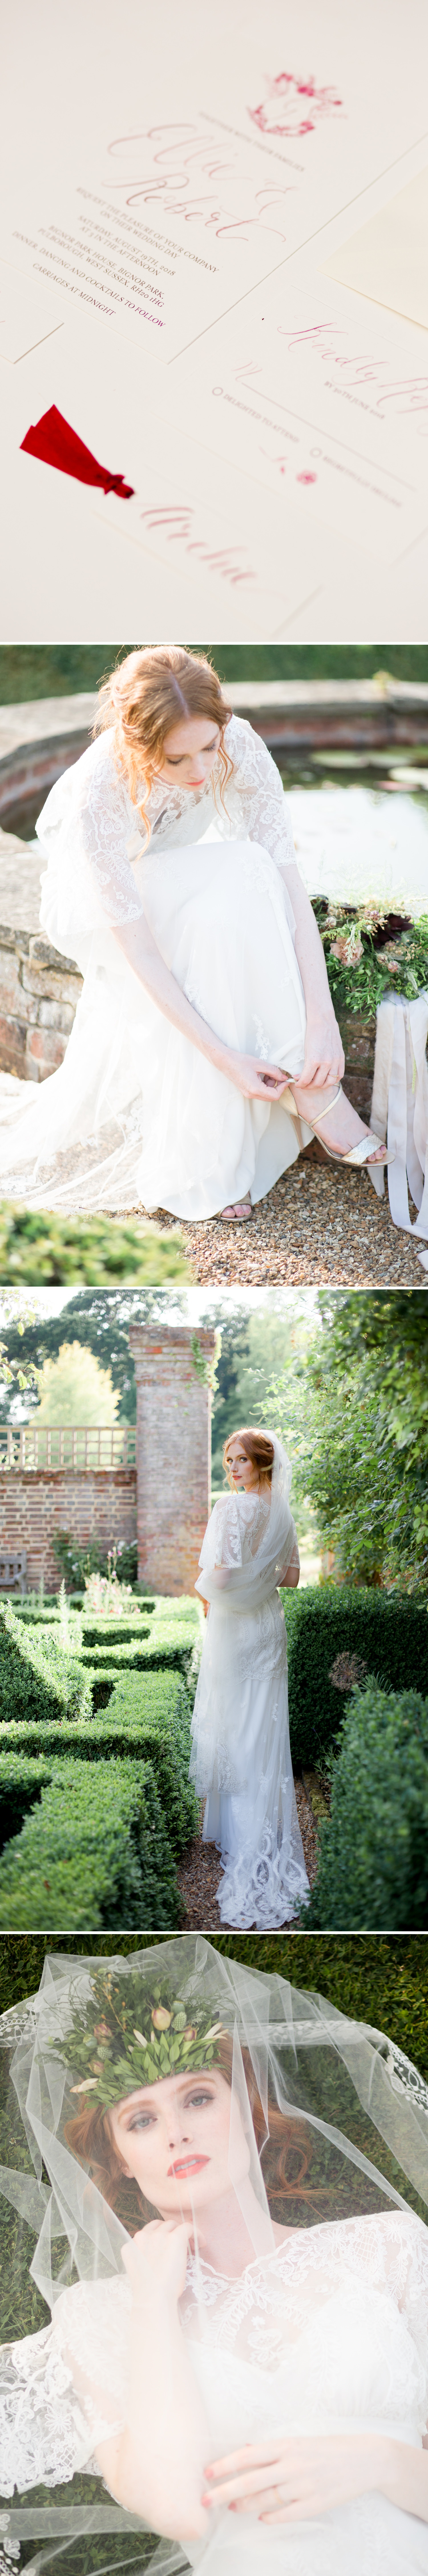 West Sussex Wedding Photographer - bridal portraits in the late evening light at Bignor Park